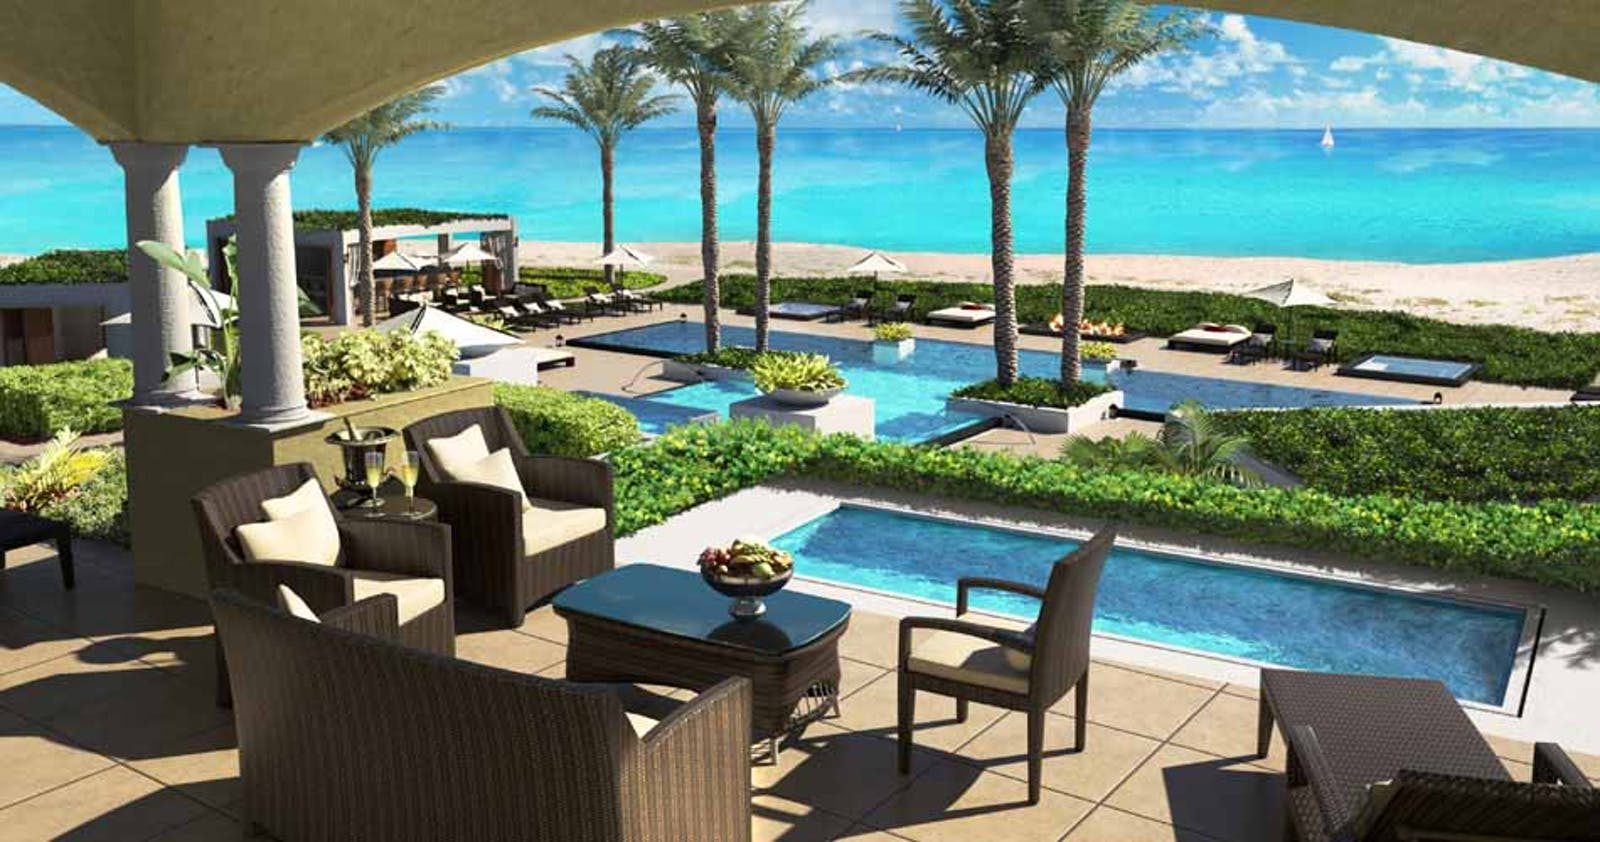 Elevated Pool and Beach View at Grace Bay Club, Turks And Caicos